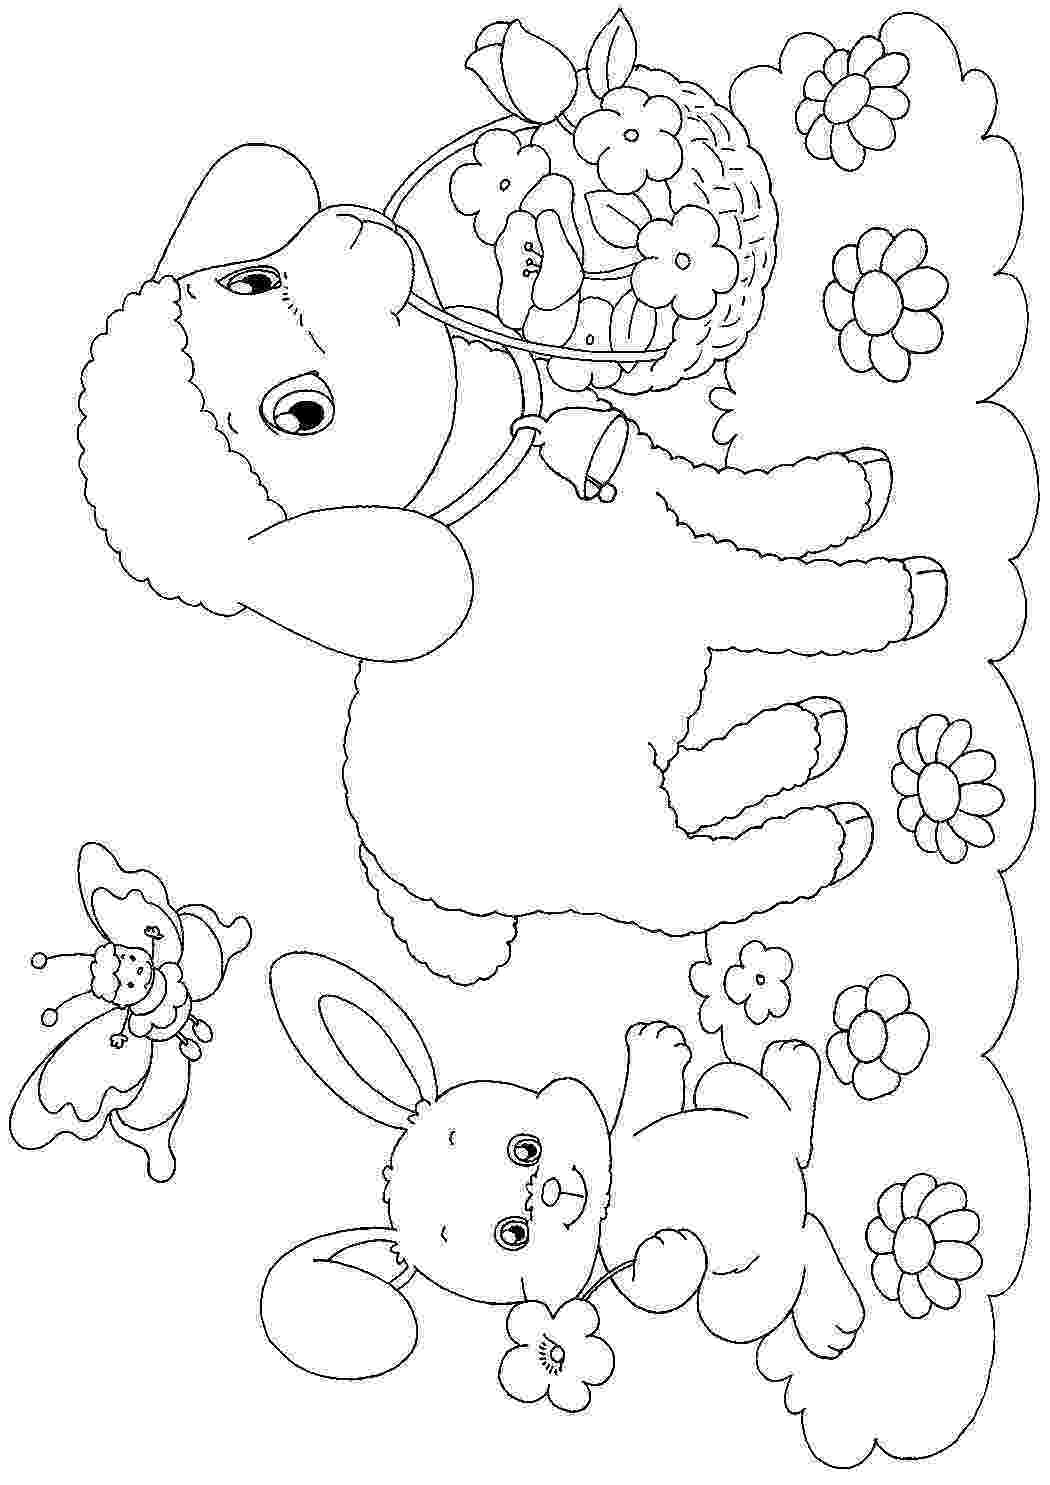 easter color sheets easter coloring pages best coloring pages for kids sheets easter color 1 1